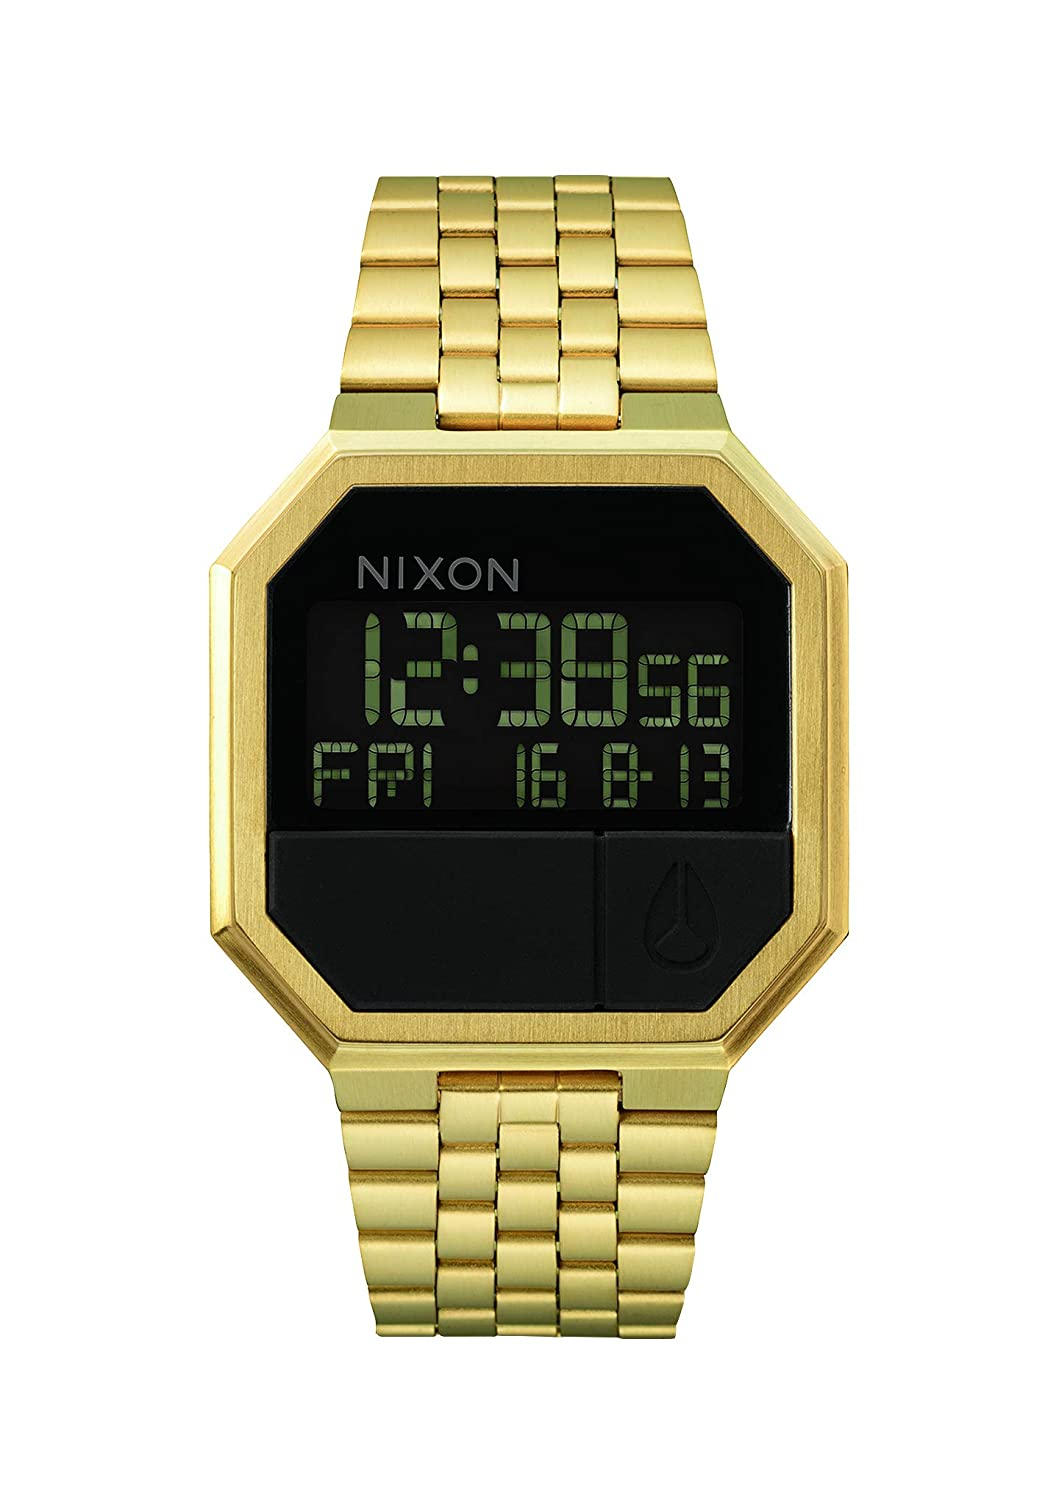 NIXON RELOJ EUROPE RE-RUN Hombre